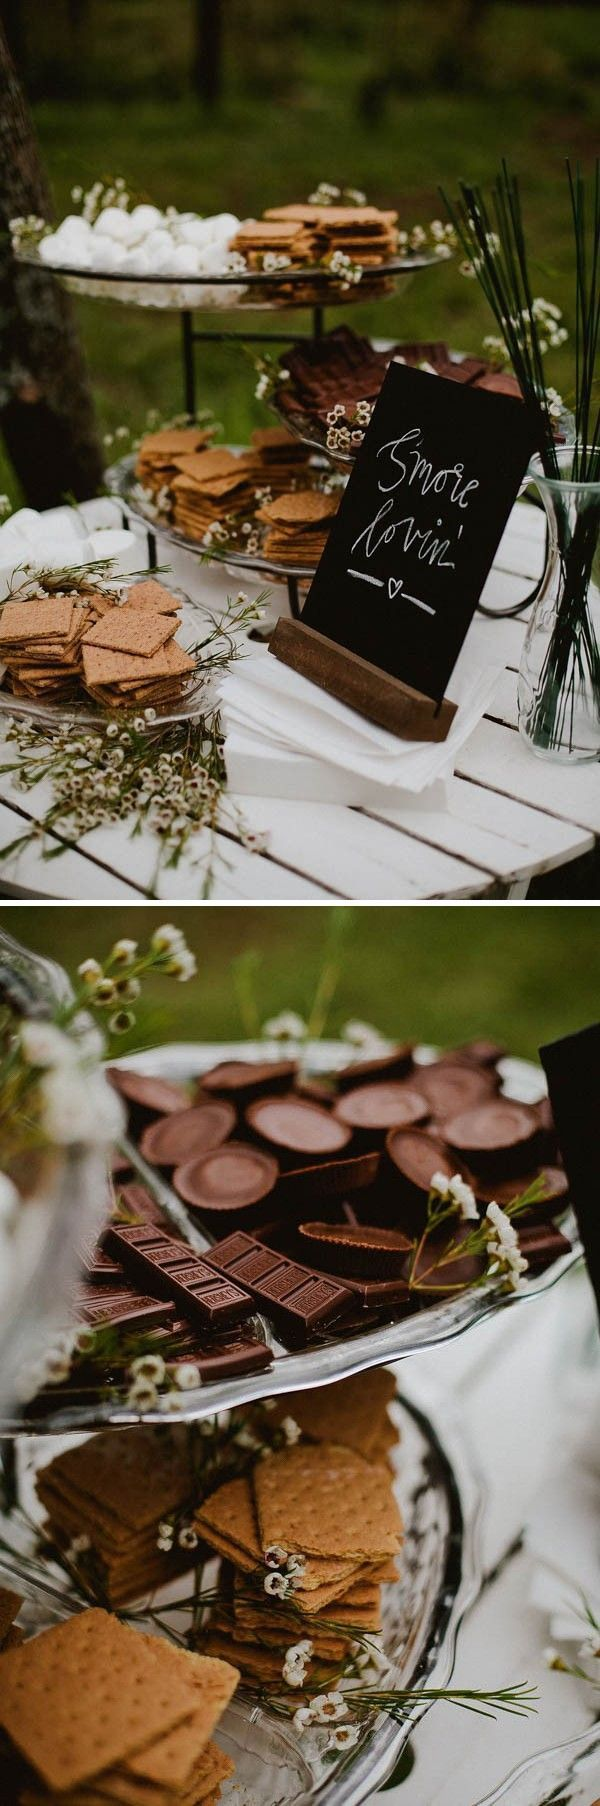 + We couldn't help but notice that all of our favorite receptions had one thing in common: fabulously designed dessert displays! From cake tables overflowi